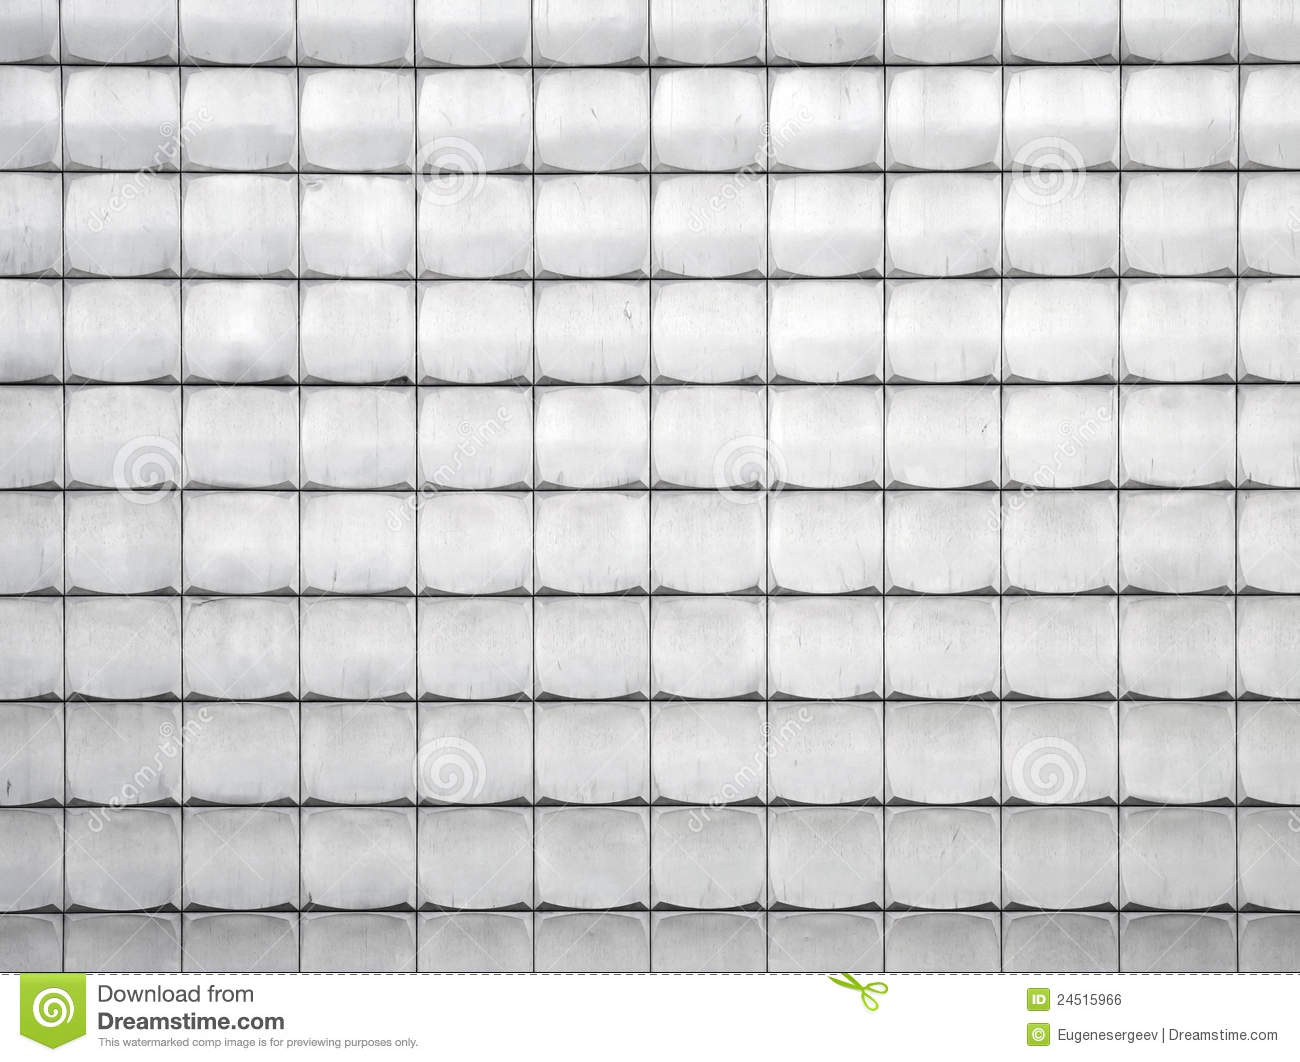 checked Textured wall panels in white for more beautiful wall ideas